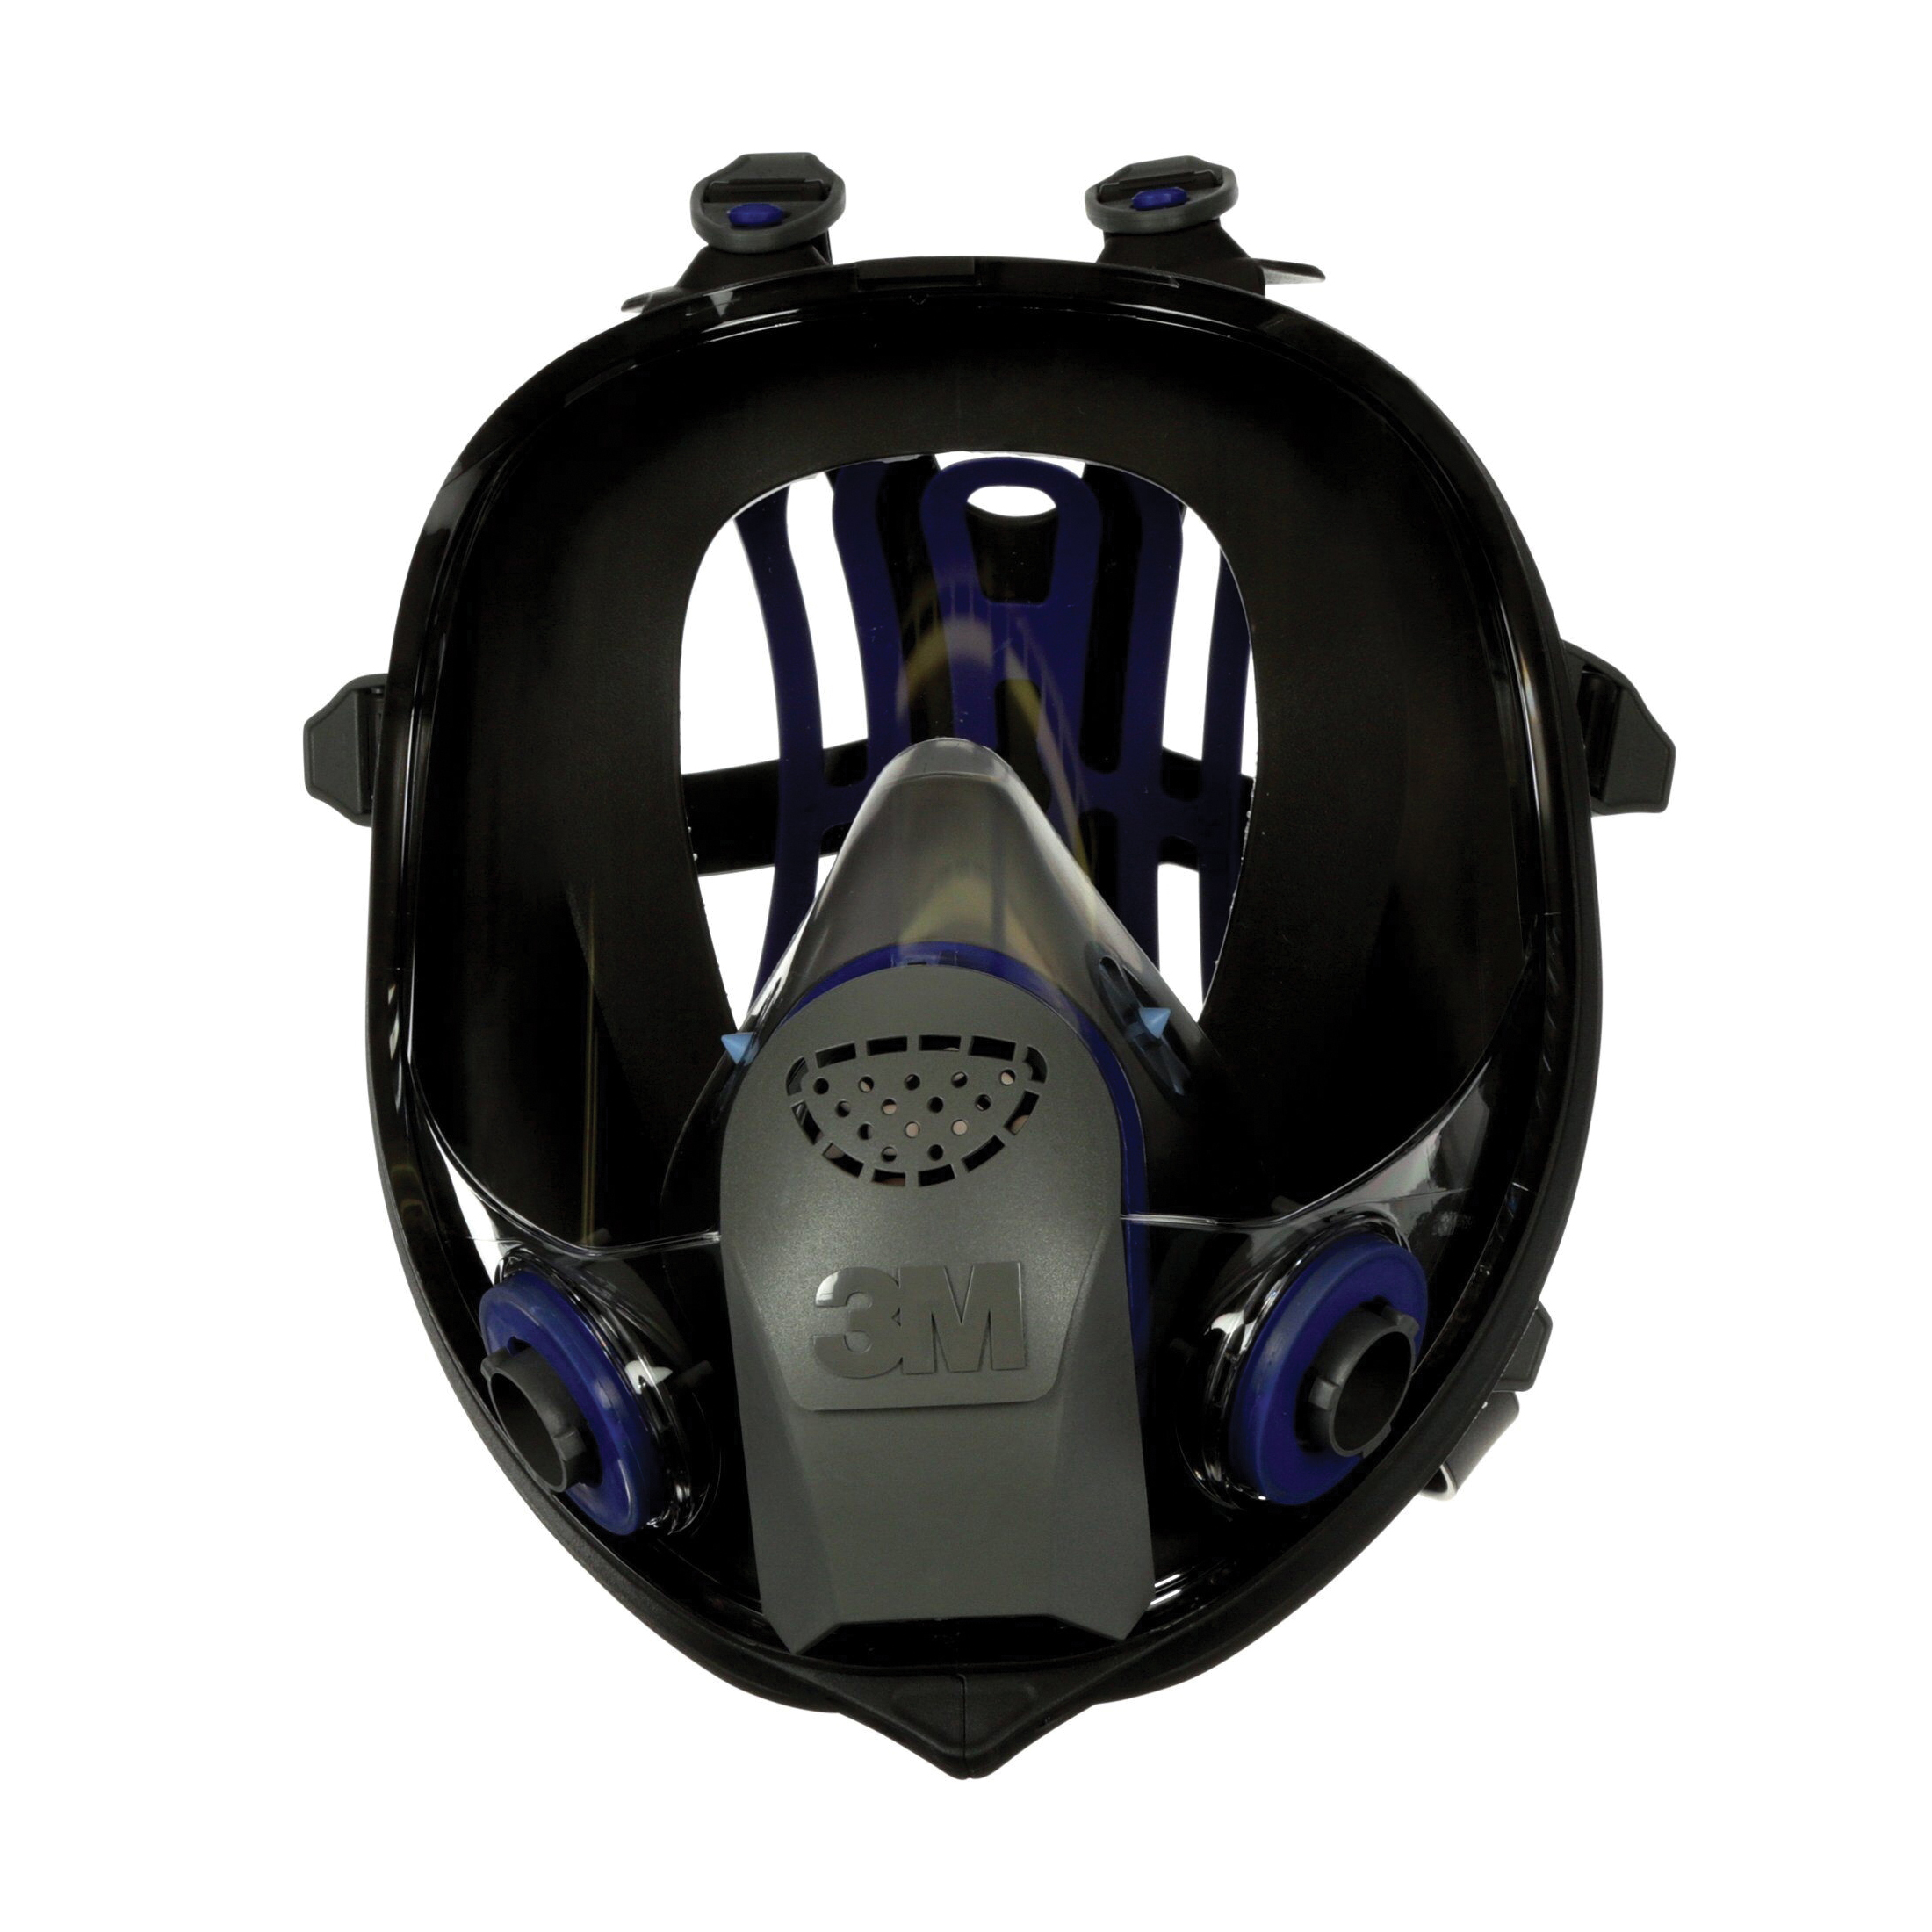 3M™ 051135-89418 Reusable Ultimate FX Full Face Respirator, S, 6-Point Suspension, Bayonet Connection